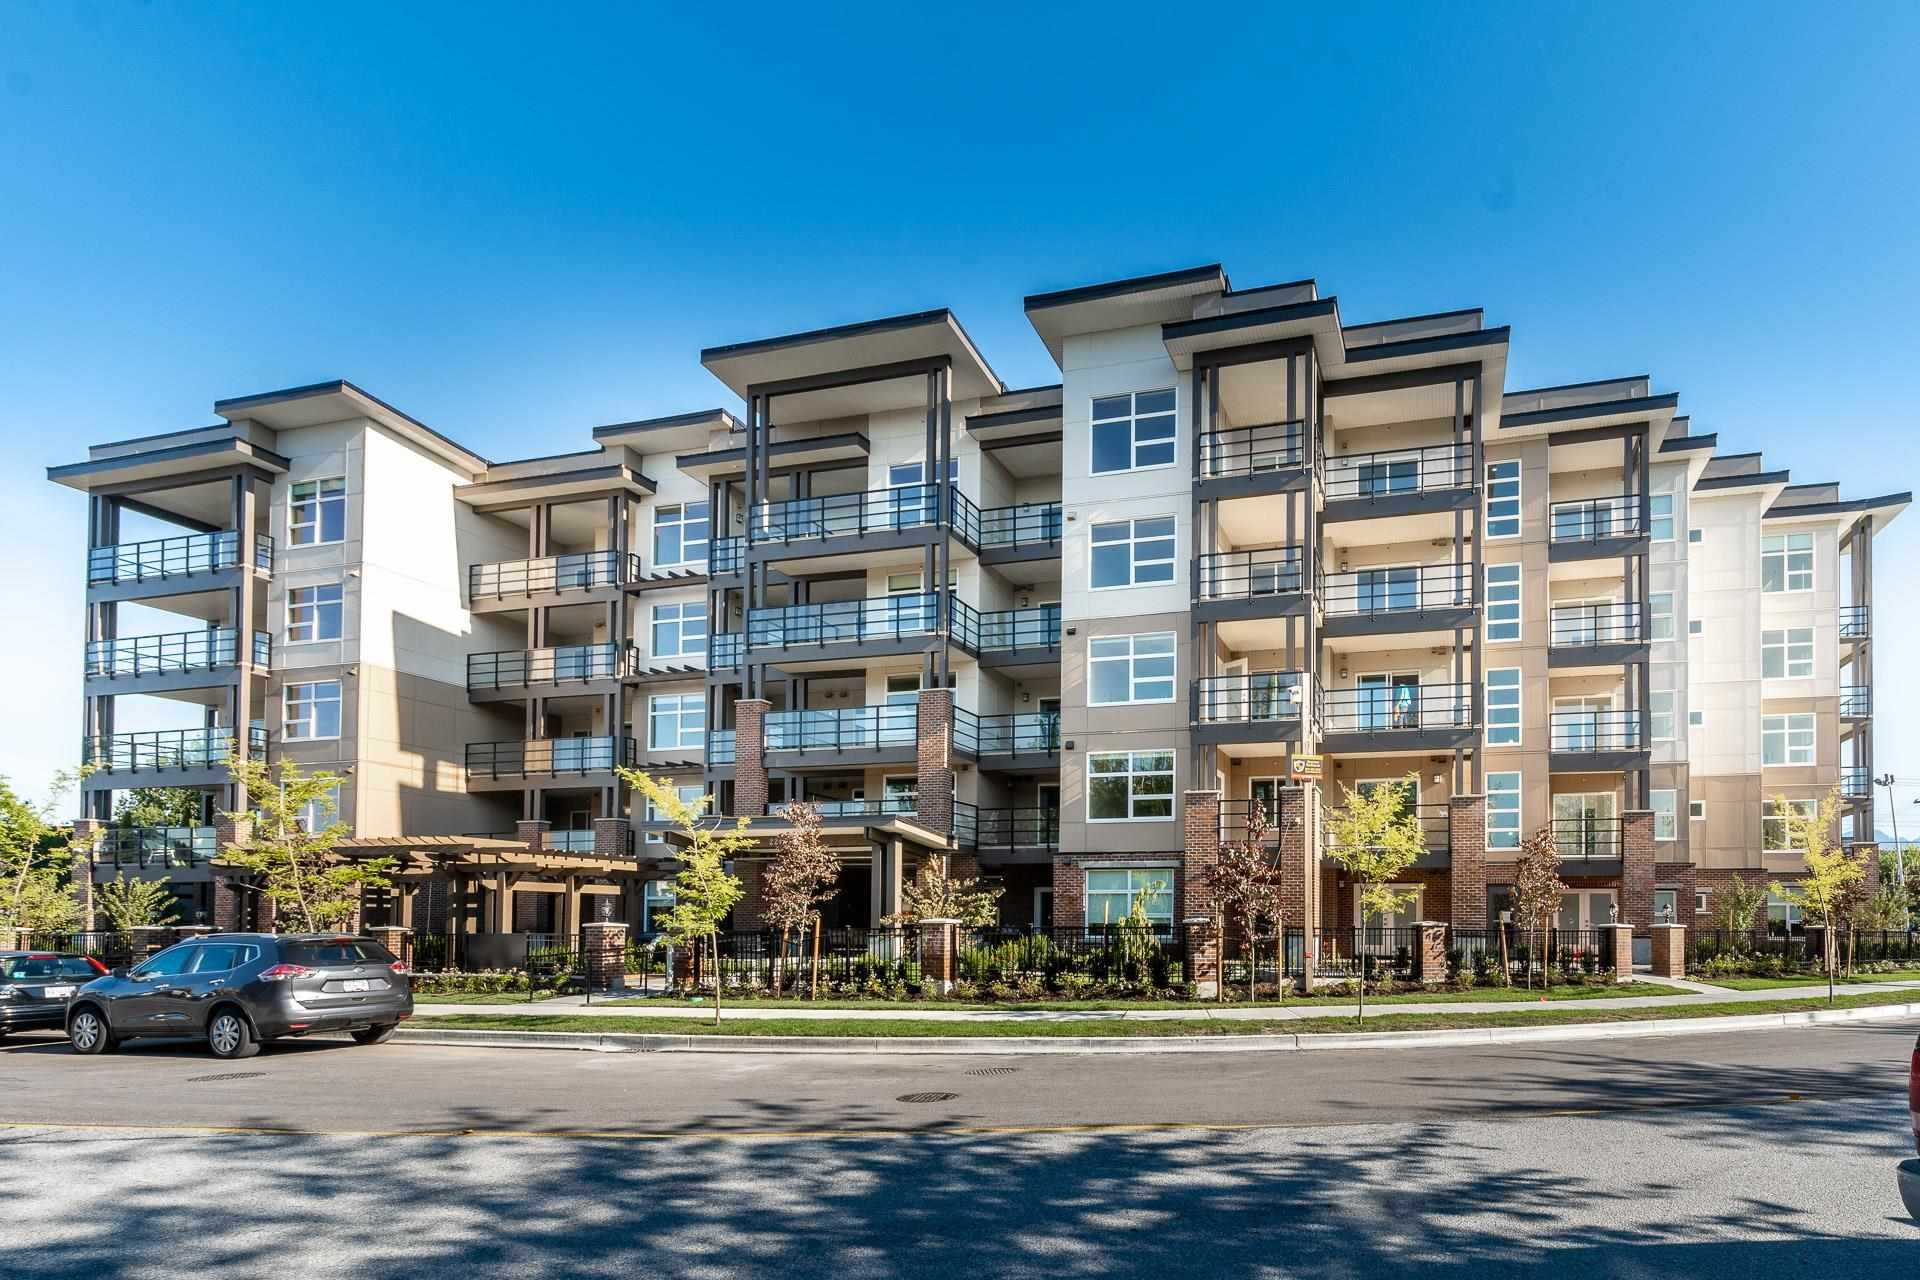 Main Photo: 110 22577 ROYAL Crescent in Maple Ridge: East Central Condo for sale : MLS®# R2601899